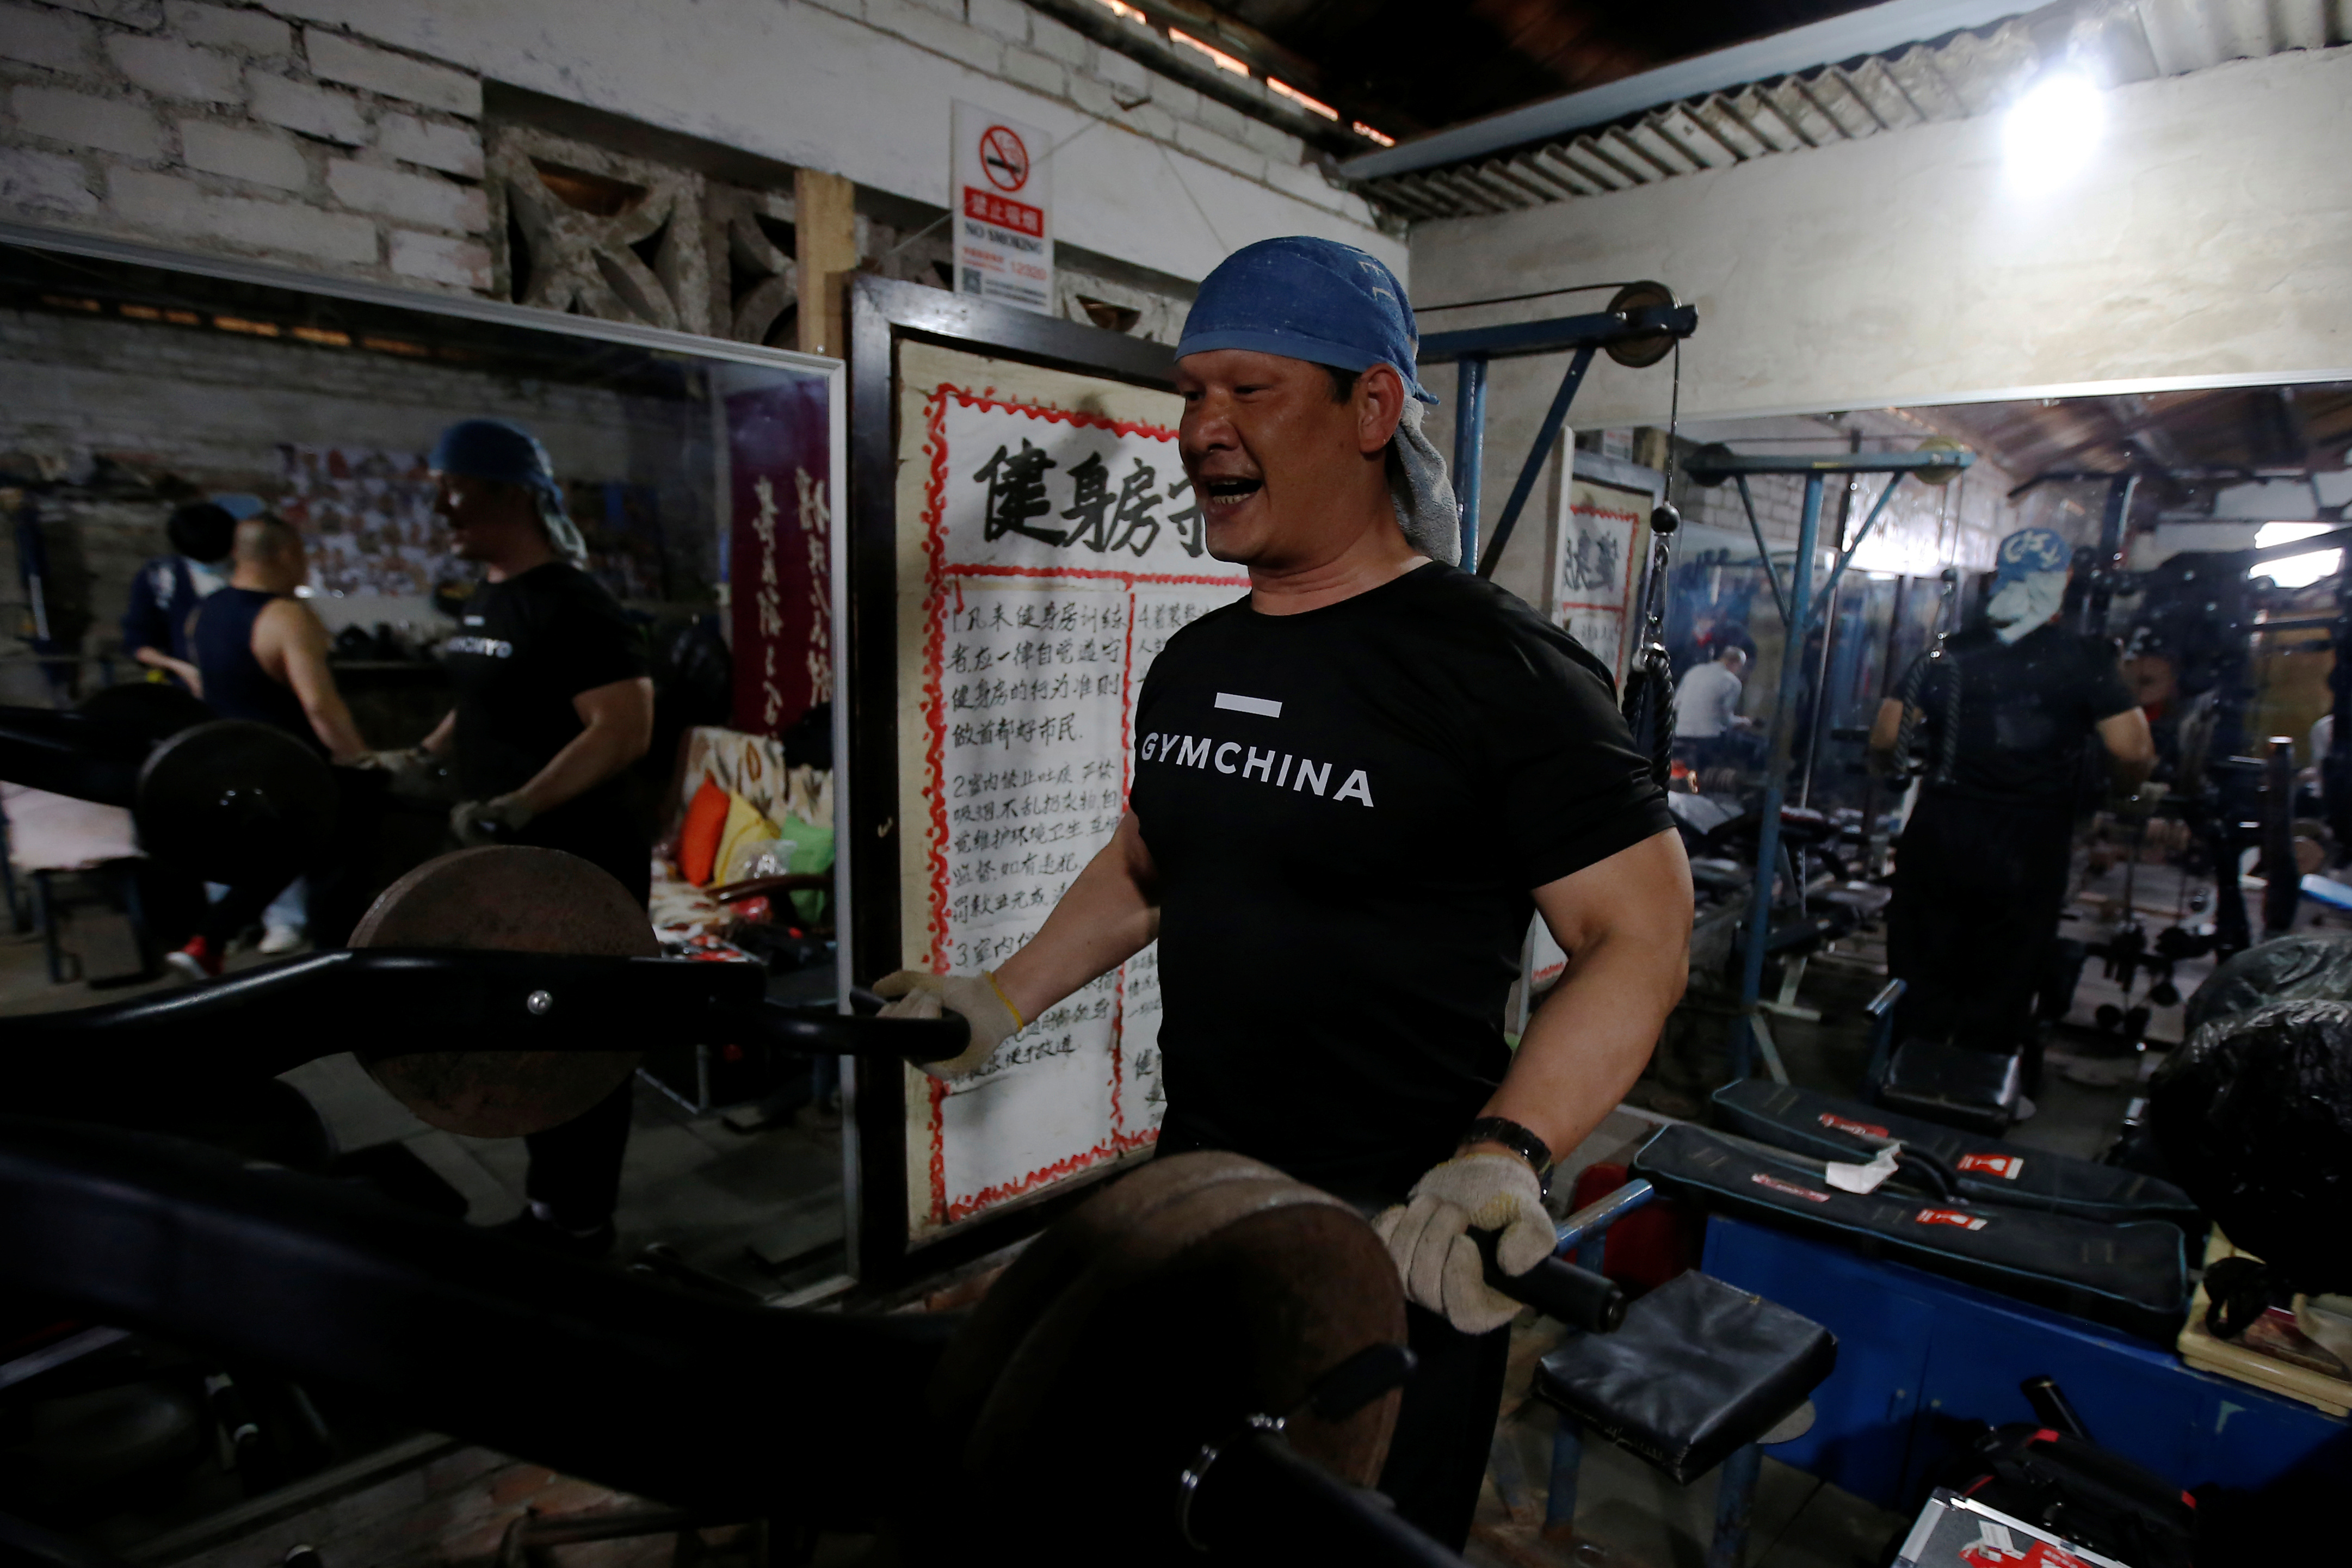 Liu Hongtao, 53, works out at a gym which has been turned from a bicycle shed inside a residential compound in the southwest of Beijing, China April 8, 2021. REUTERS/Tingshu Wang